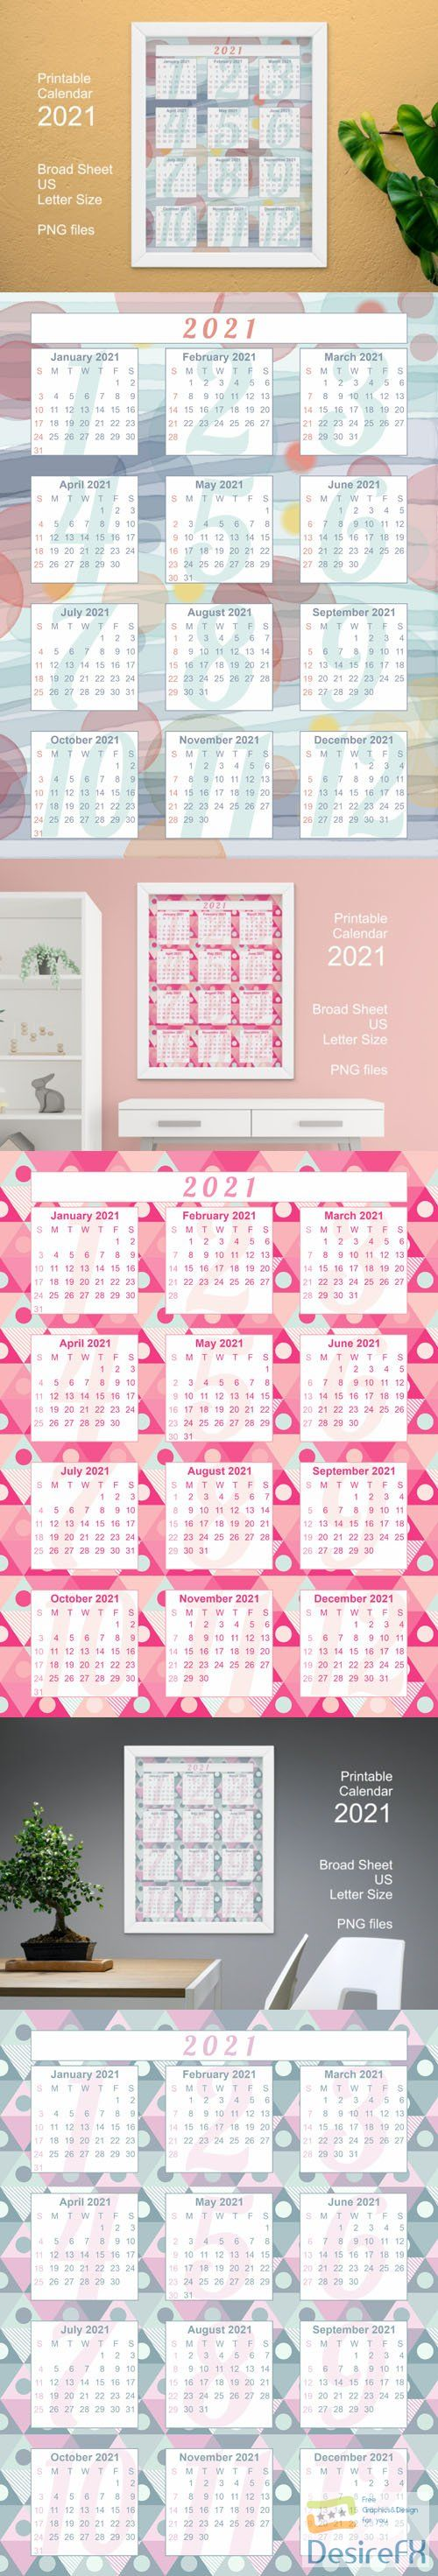 3 Printable Calendar 2021 in PNG